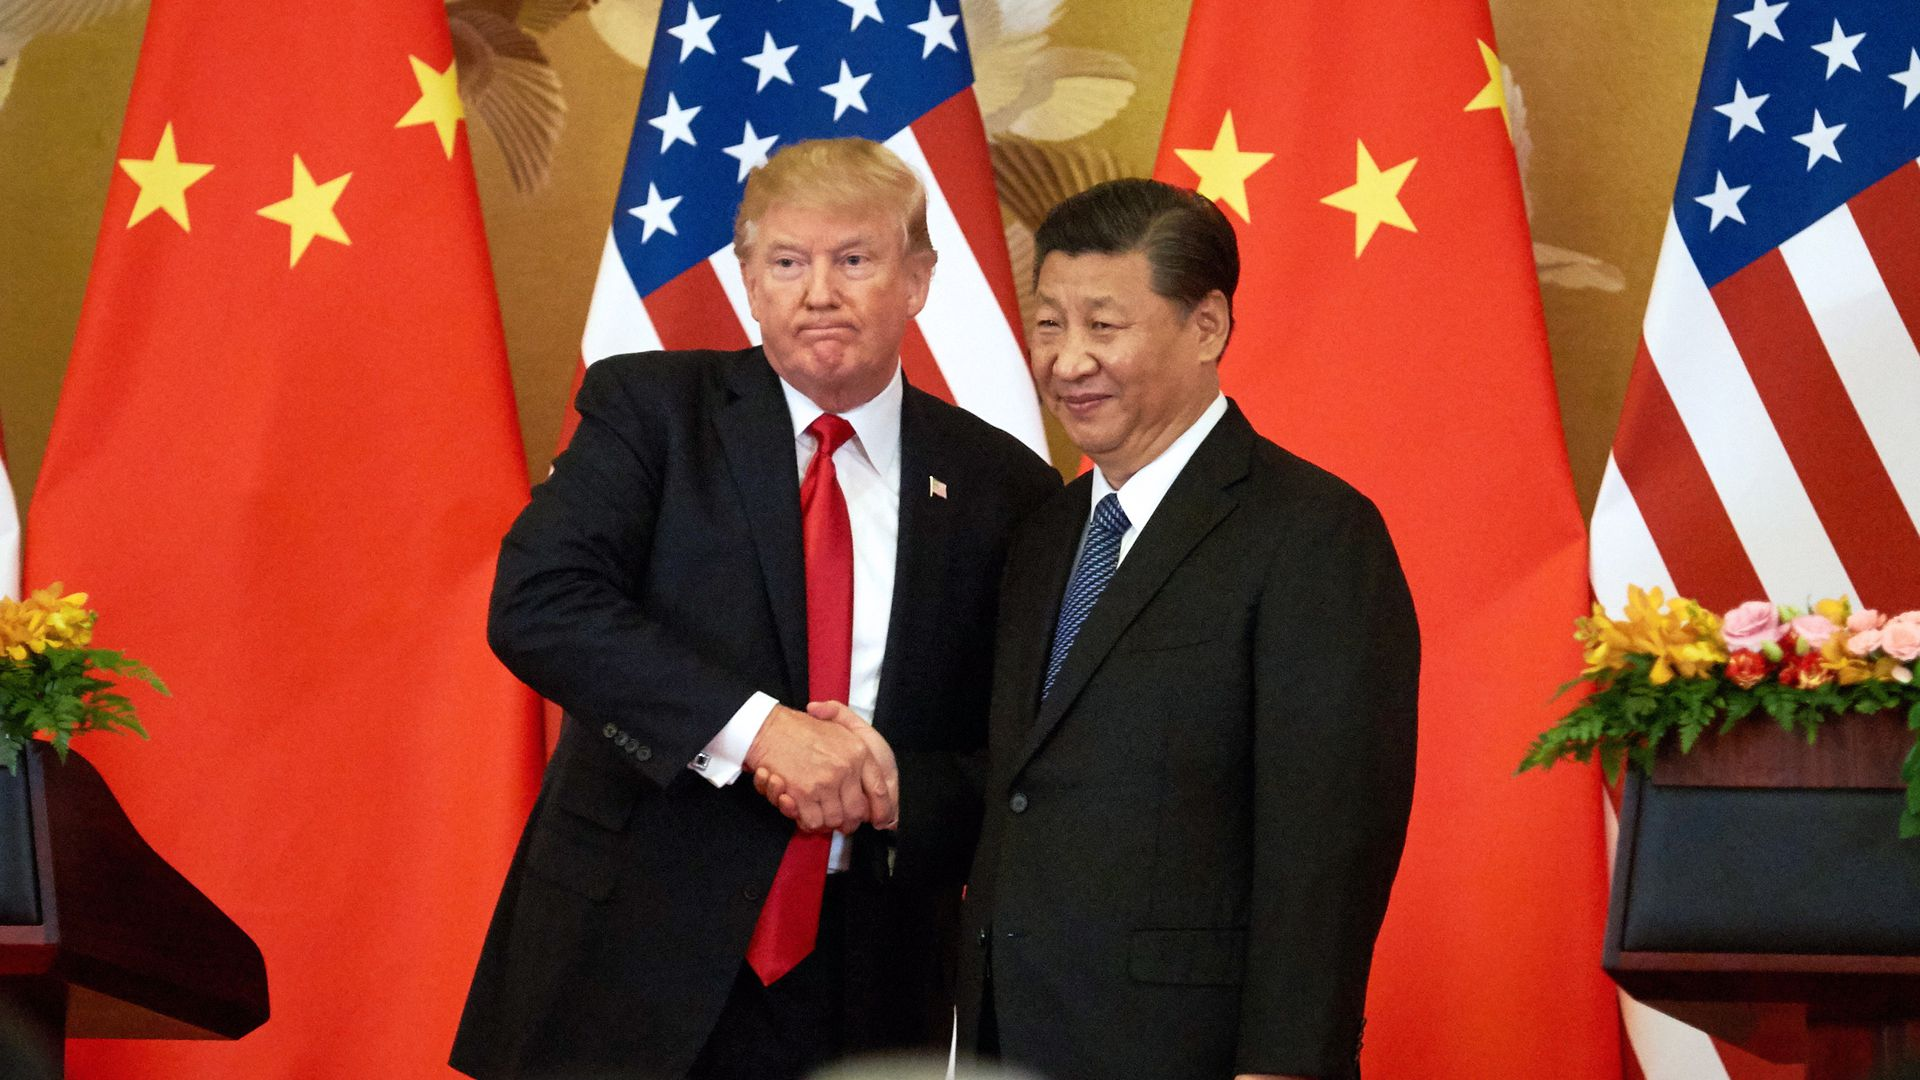 Trump and Xi shake hands.